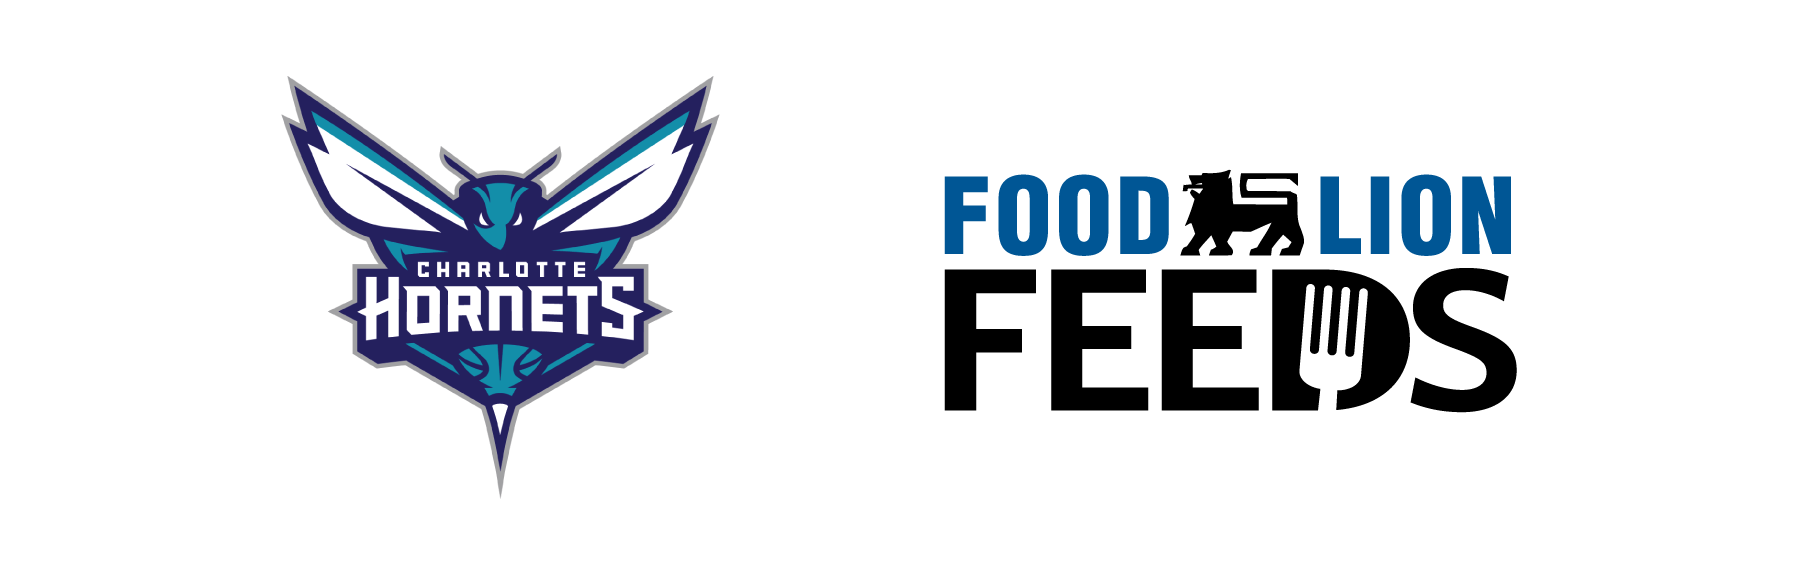 Hornets and Food Lion Feeds Logos